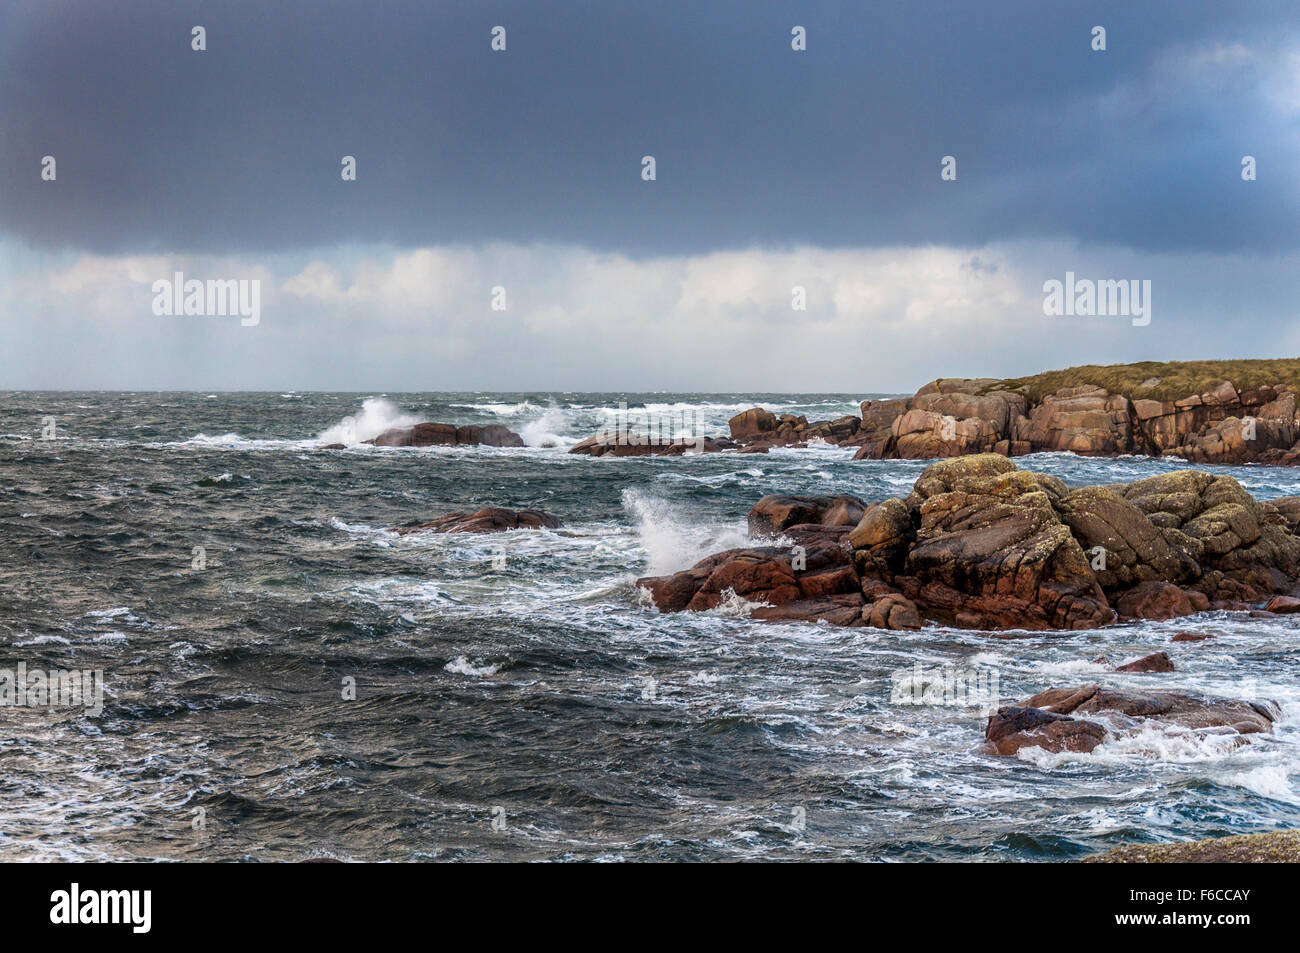 Wild Atlantic Way the ocean from Cruit Island, County Donegal, Ireland - Stock Image